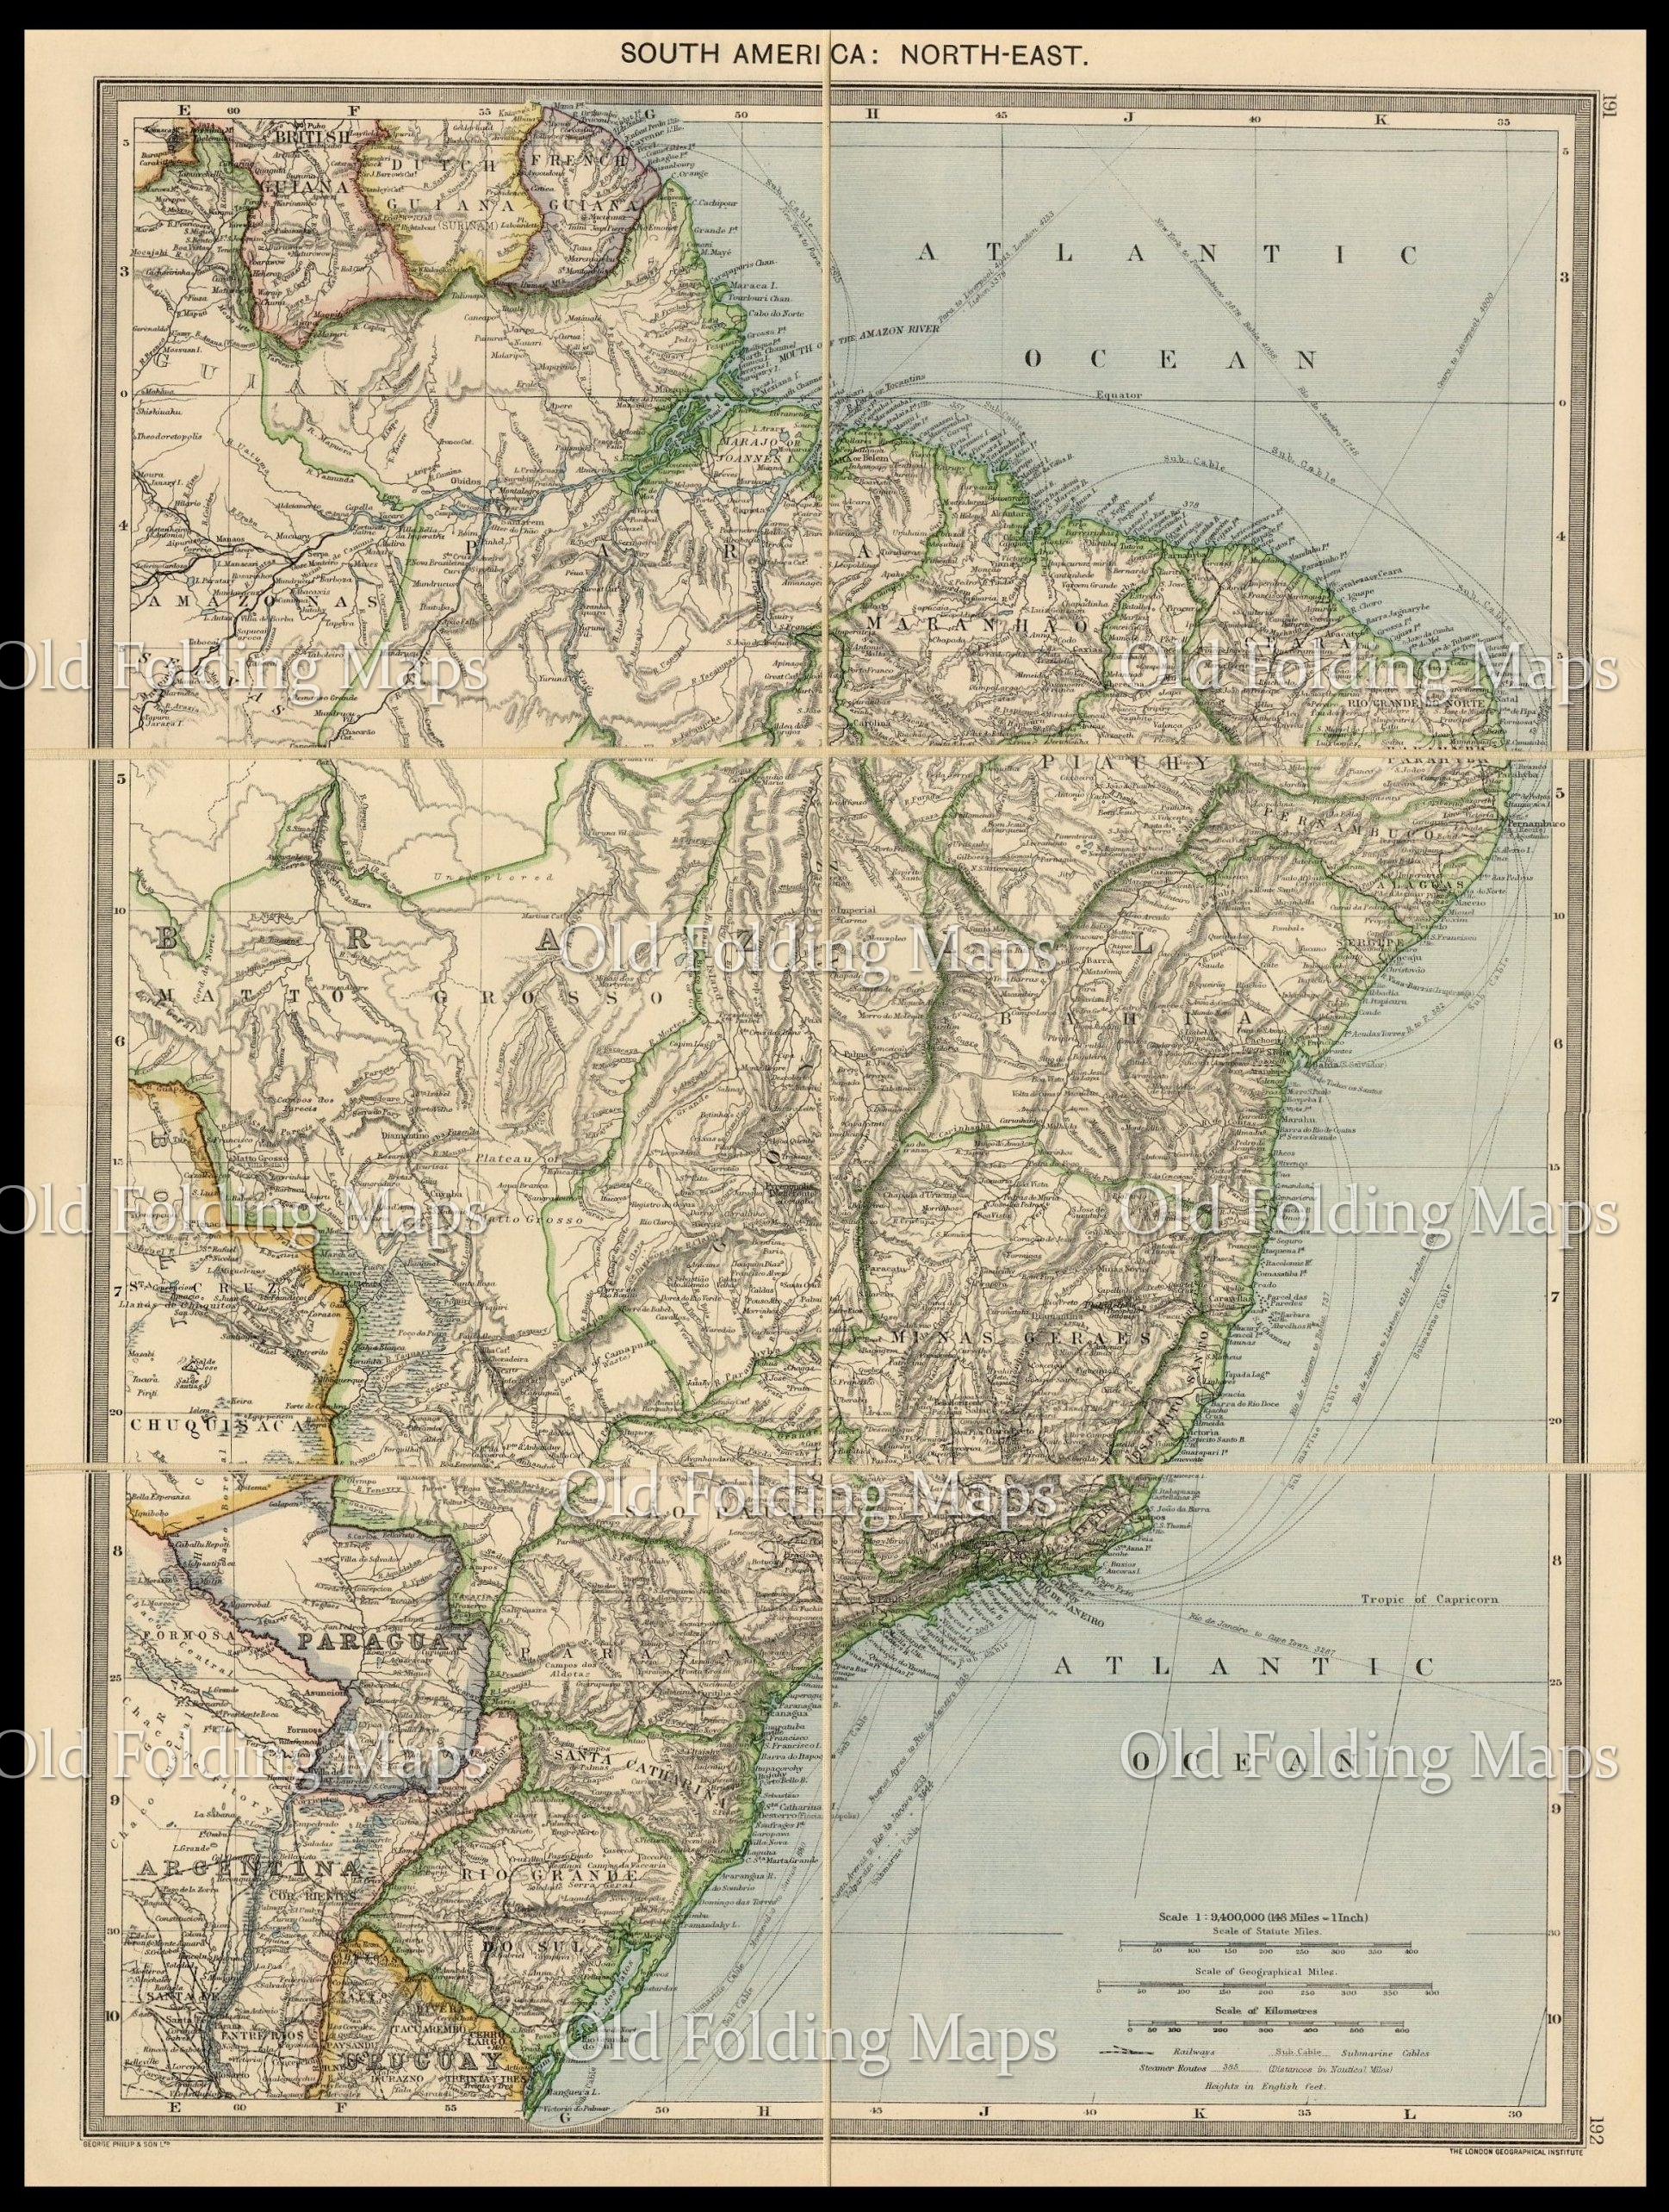 Old Map Of South America North East Circa 1900